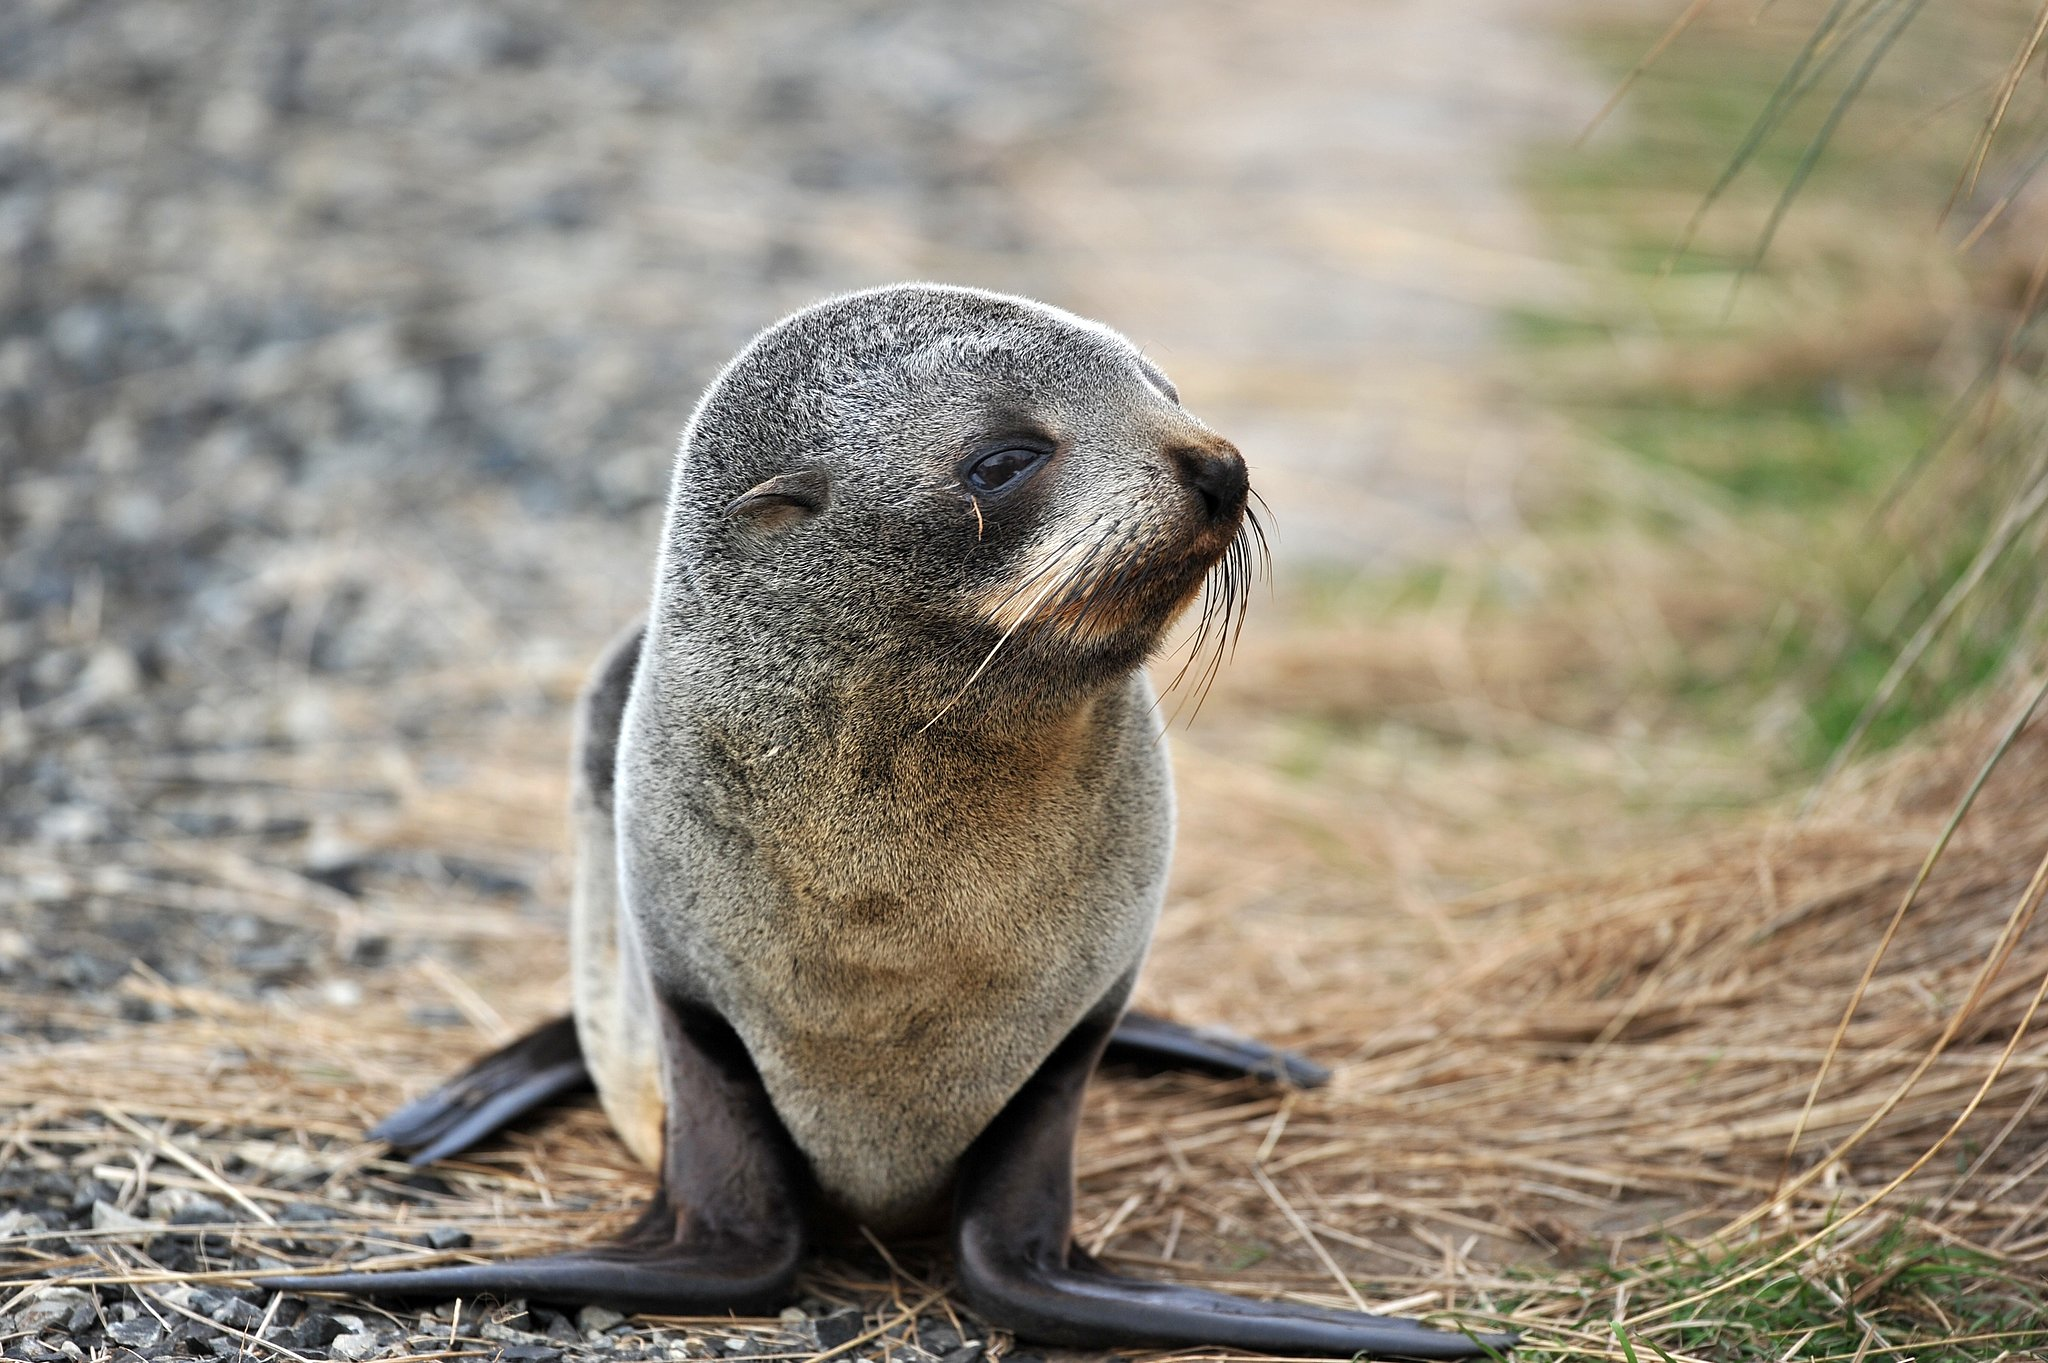 Fur seals are generally smaller than sea lions, but their flippers are proportionately much larger.